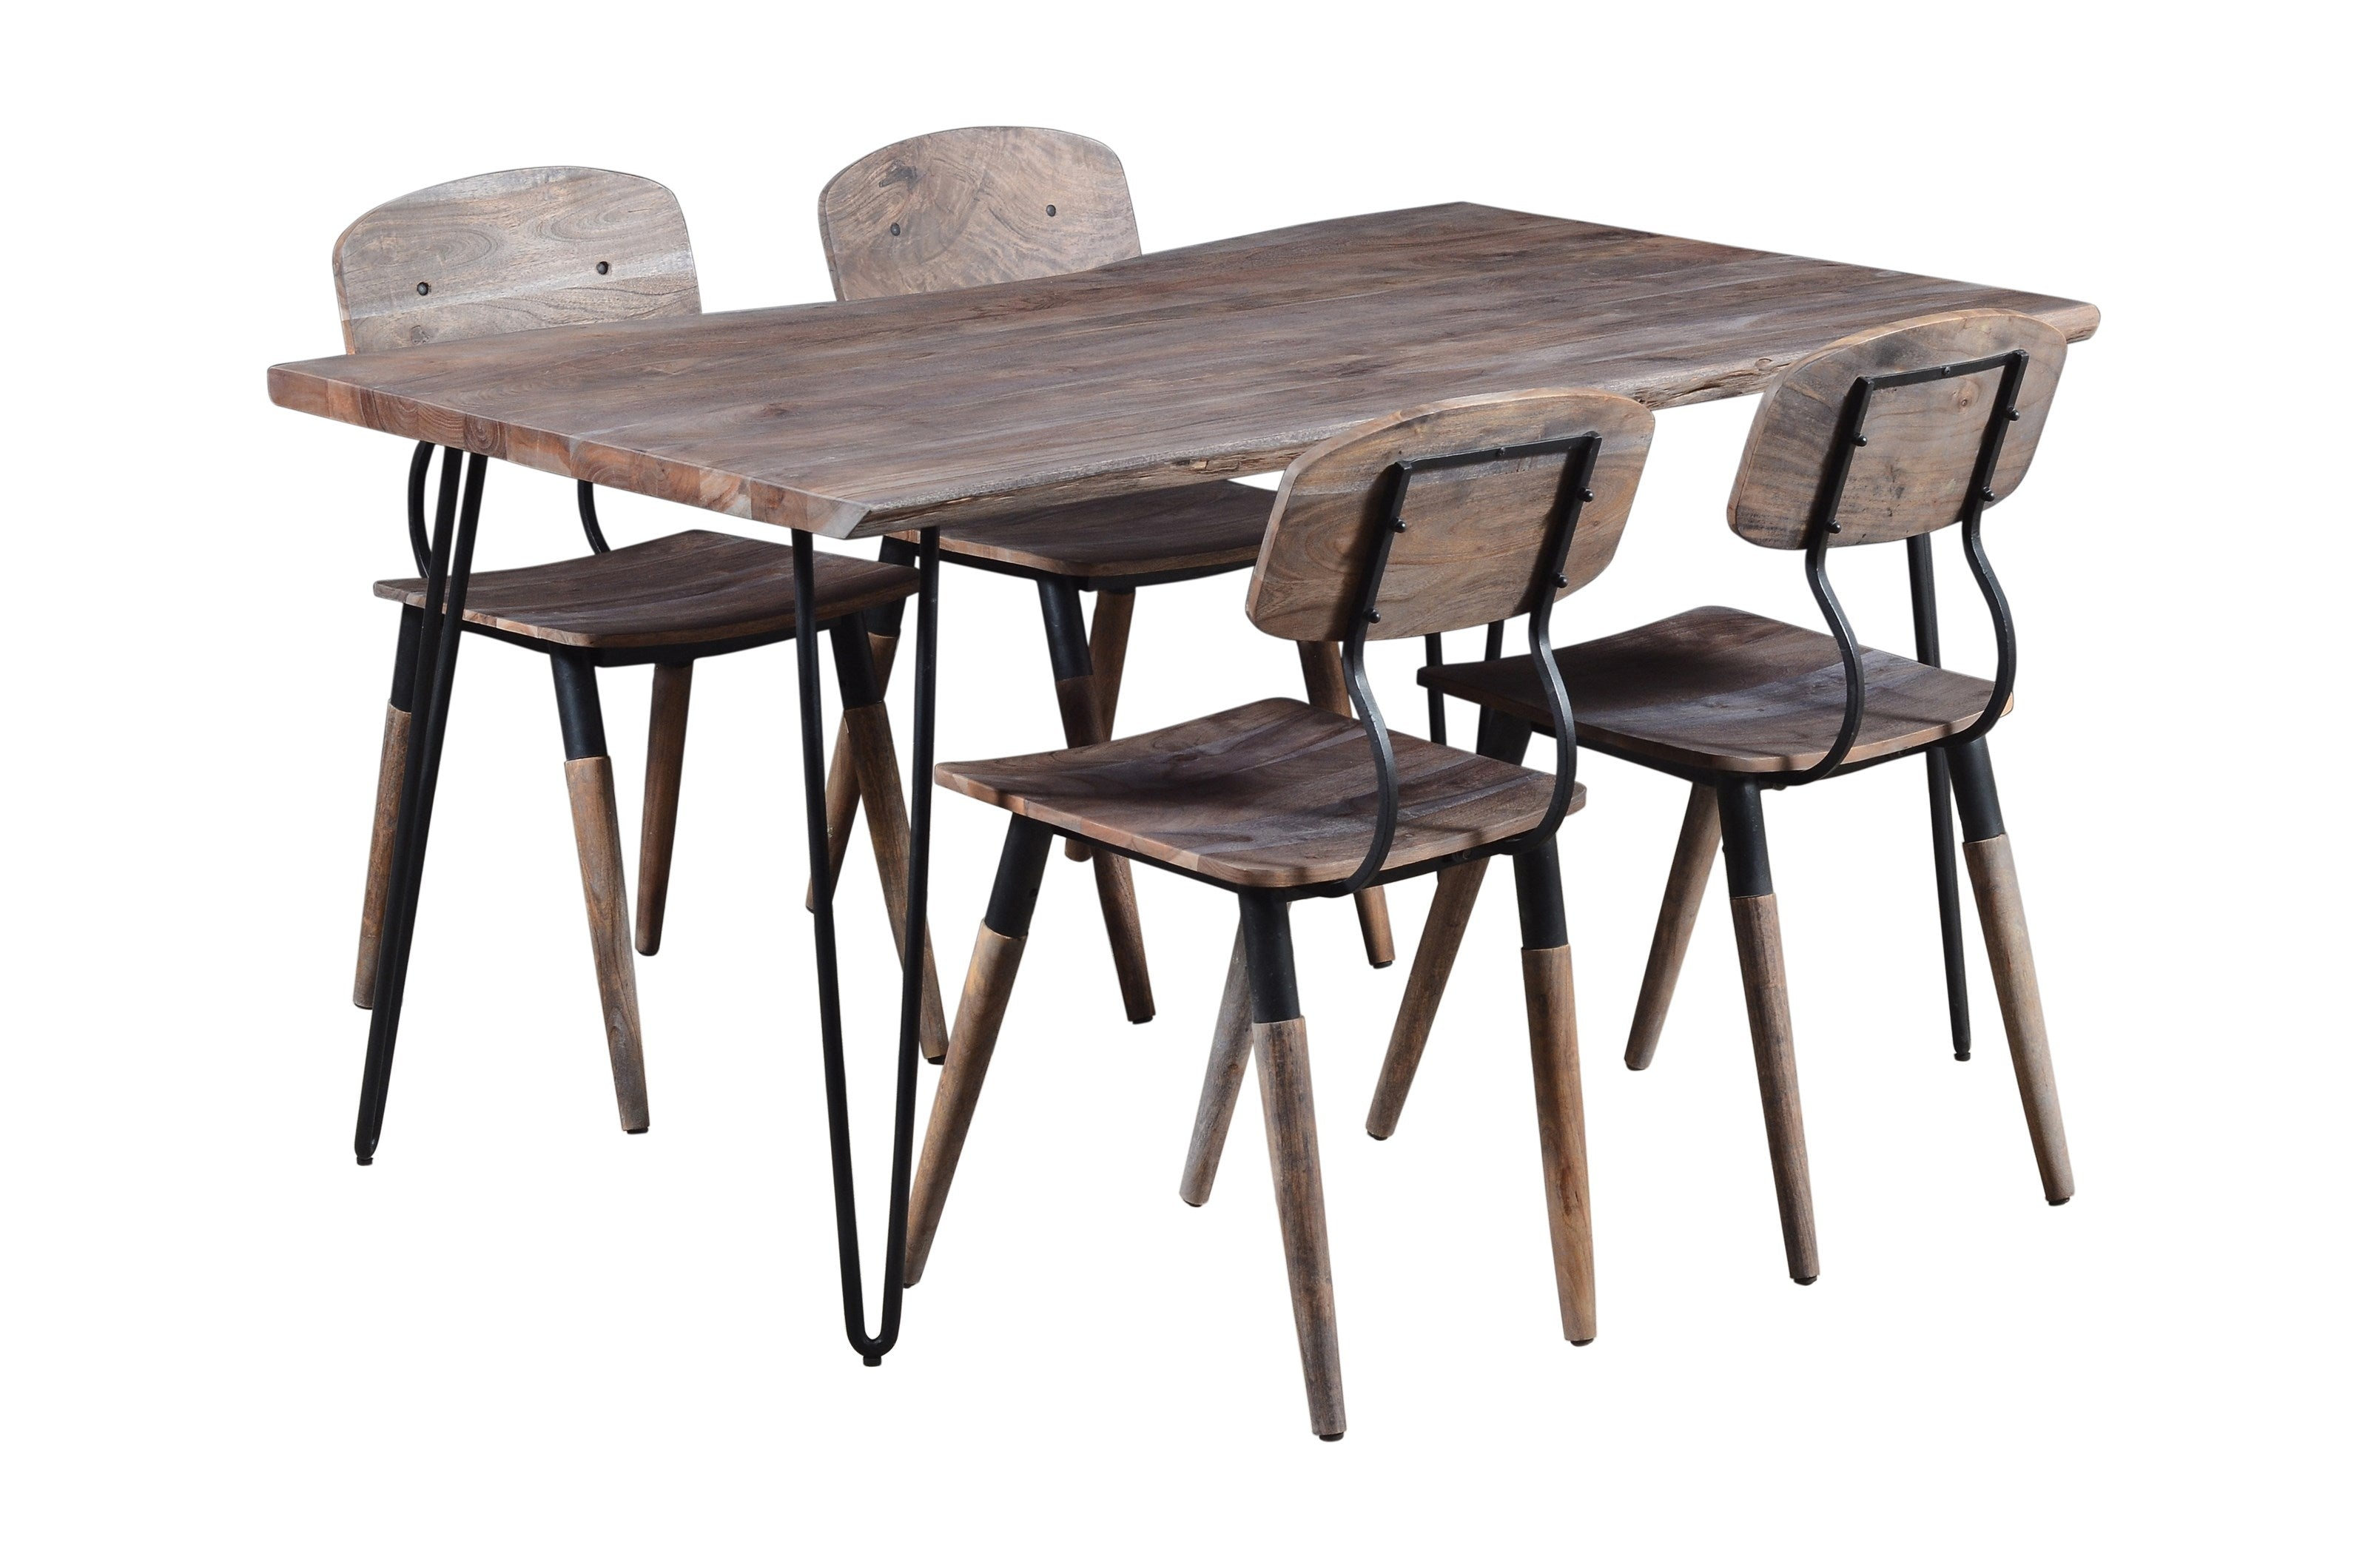 Rustic Grey Nature's Edge Dining Room Set - Lifestyle Furniture